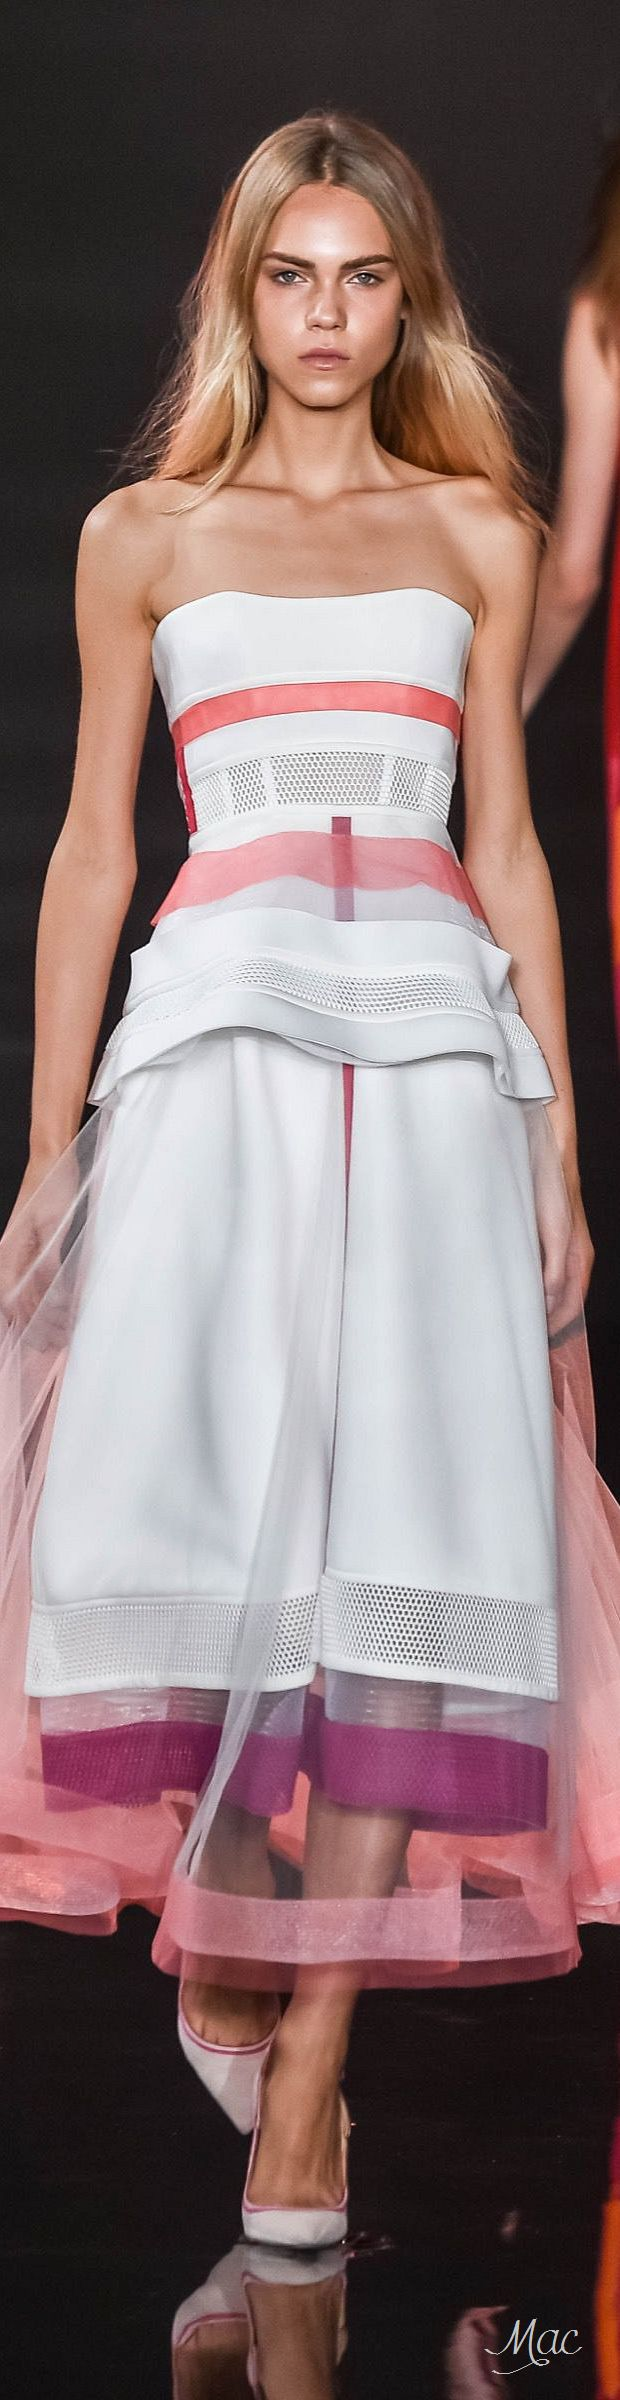 "Spring 2016 Ready-to-Wear Valentin Yudashkin ""And the LORD said to Moses, ""Go to the people and consecrate them today and tomorrow. Have them wash their clothes."" Exodus 19:10"